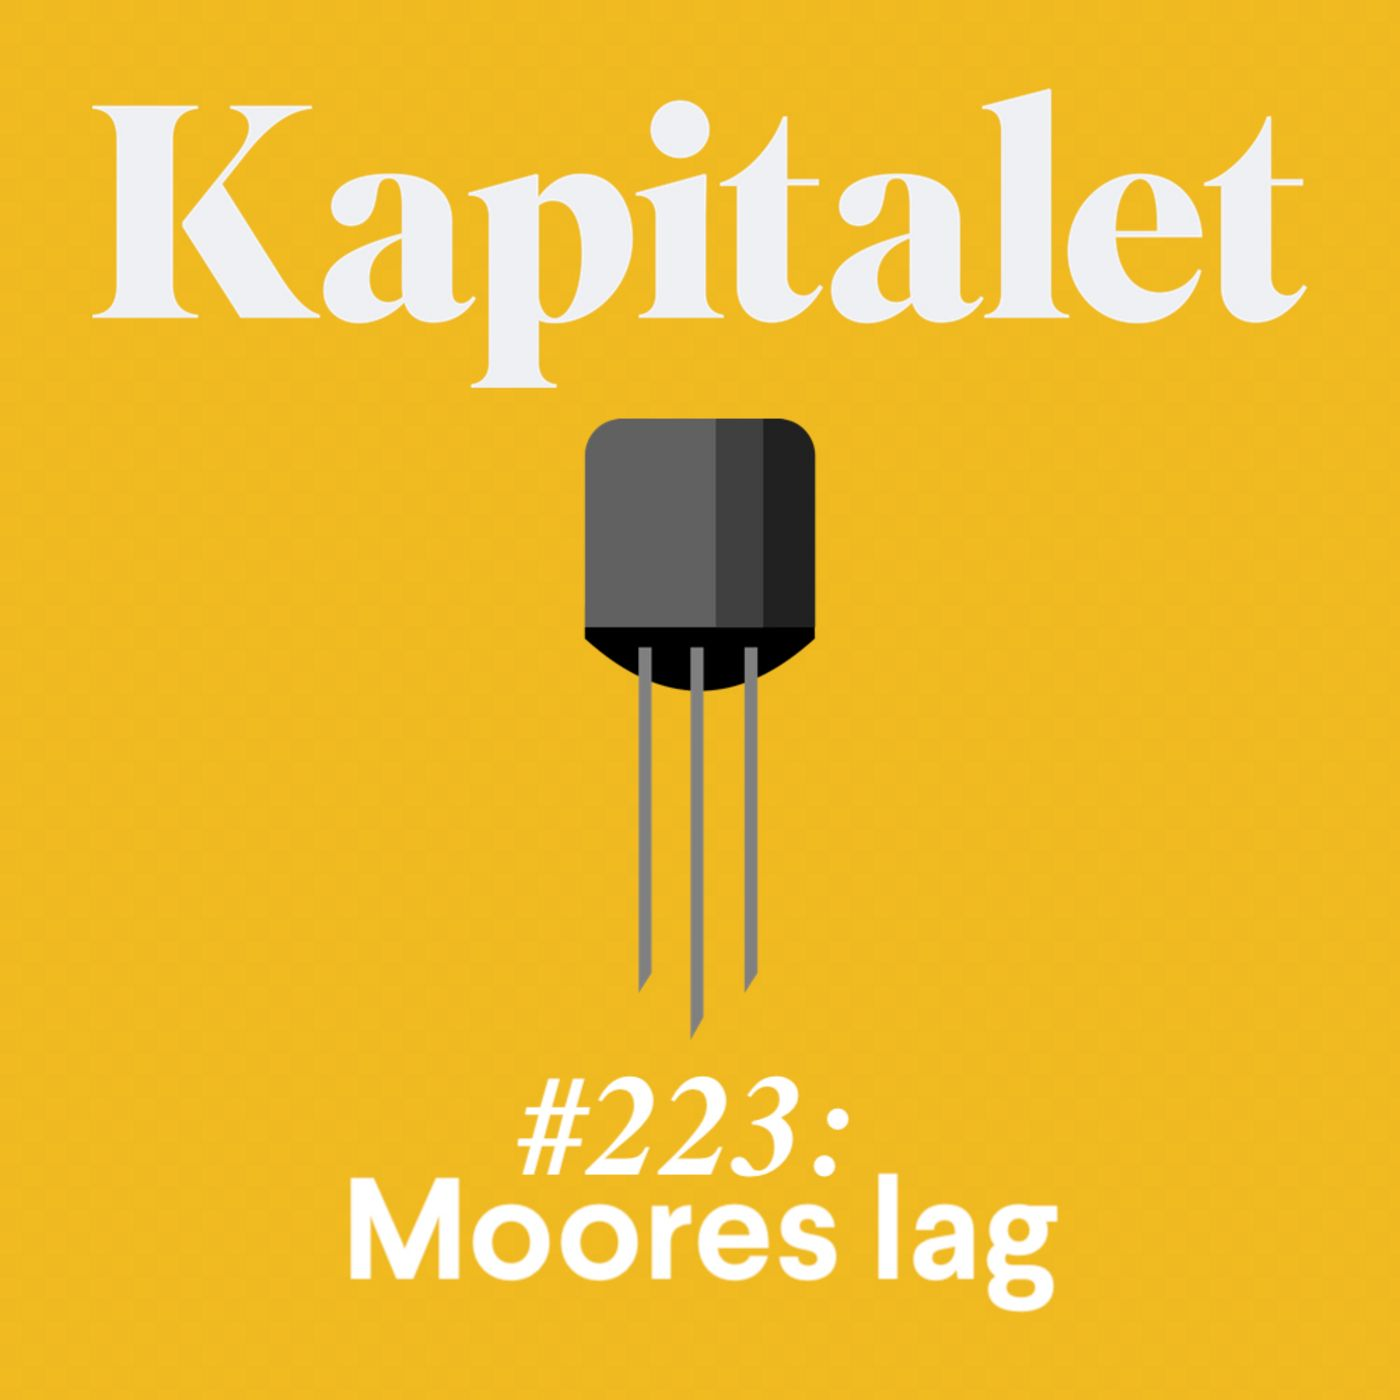 223: Moores lag